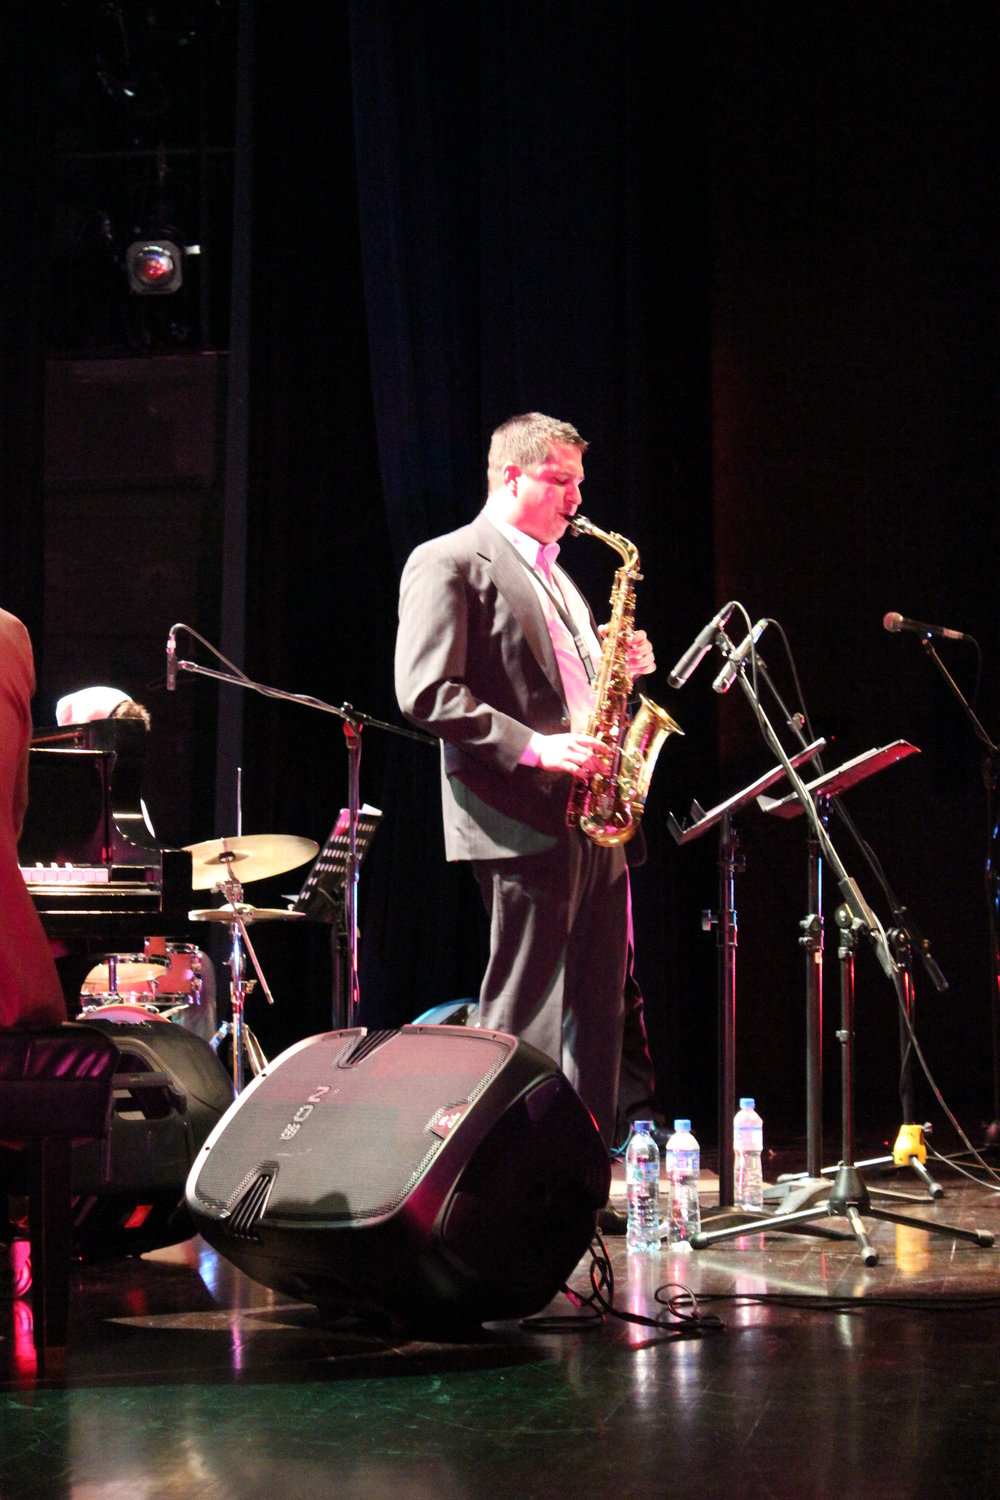 2014 Guatemala International Jazz Festival